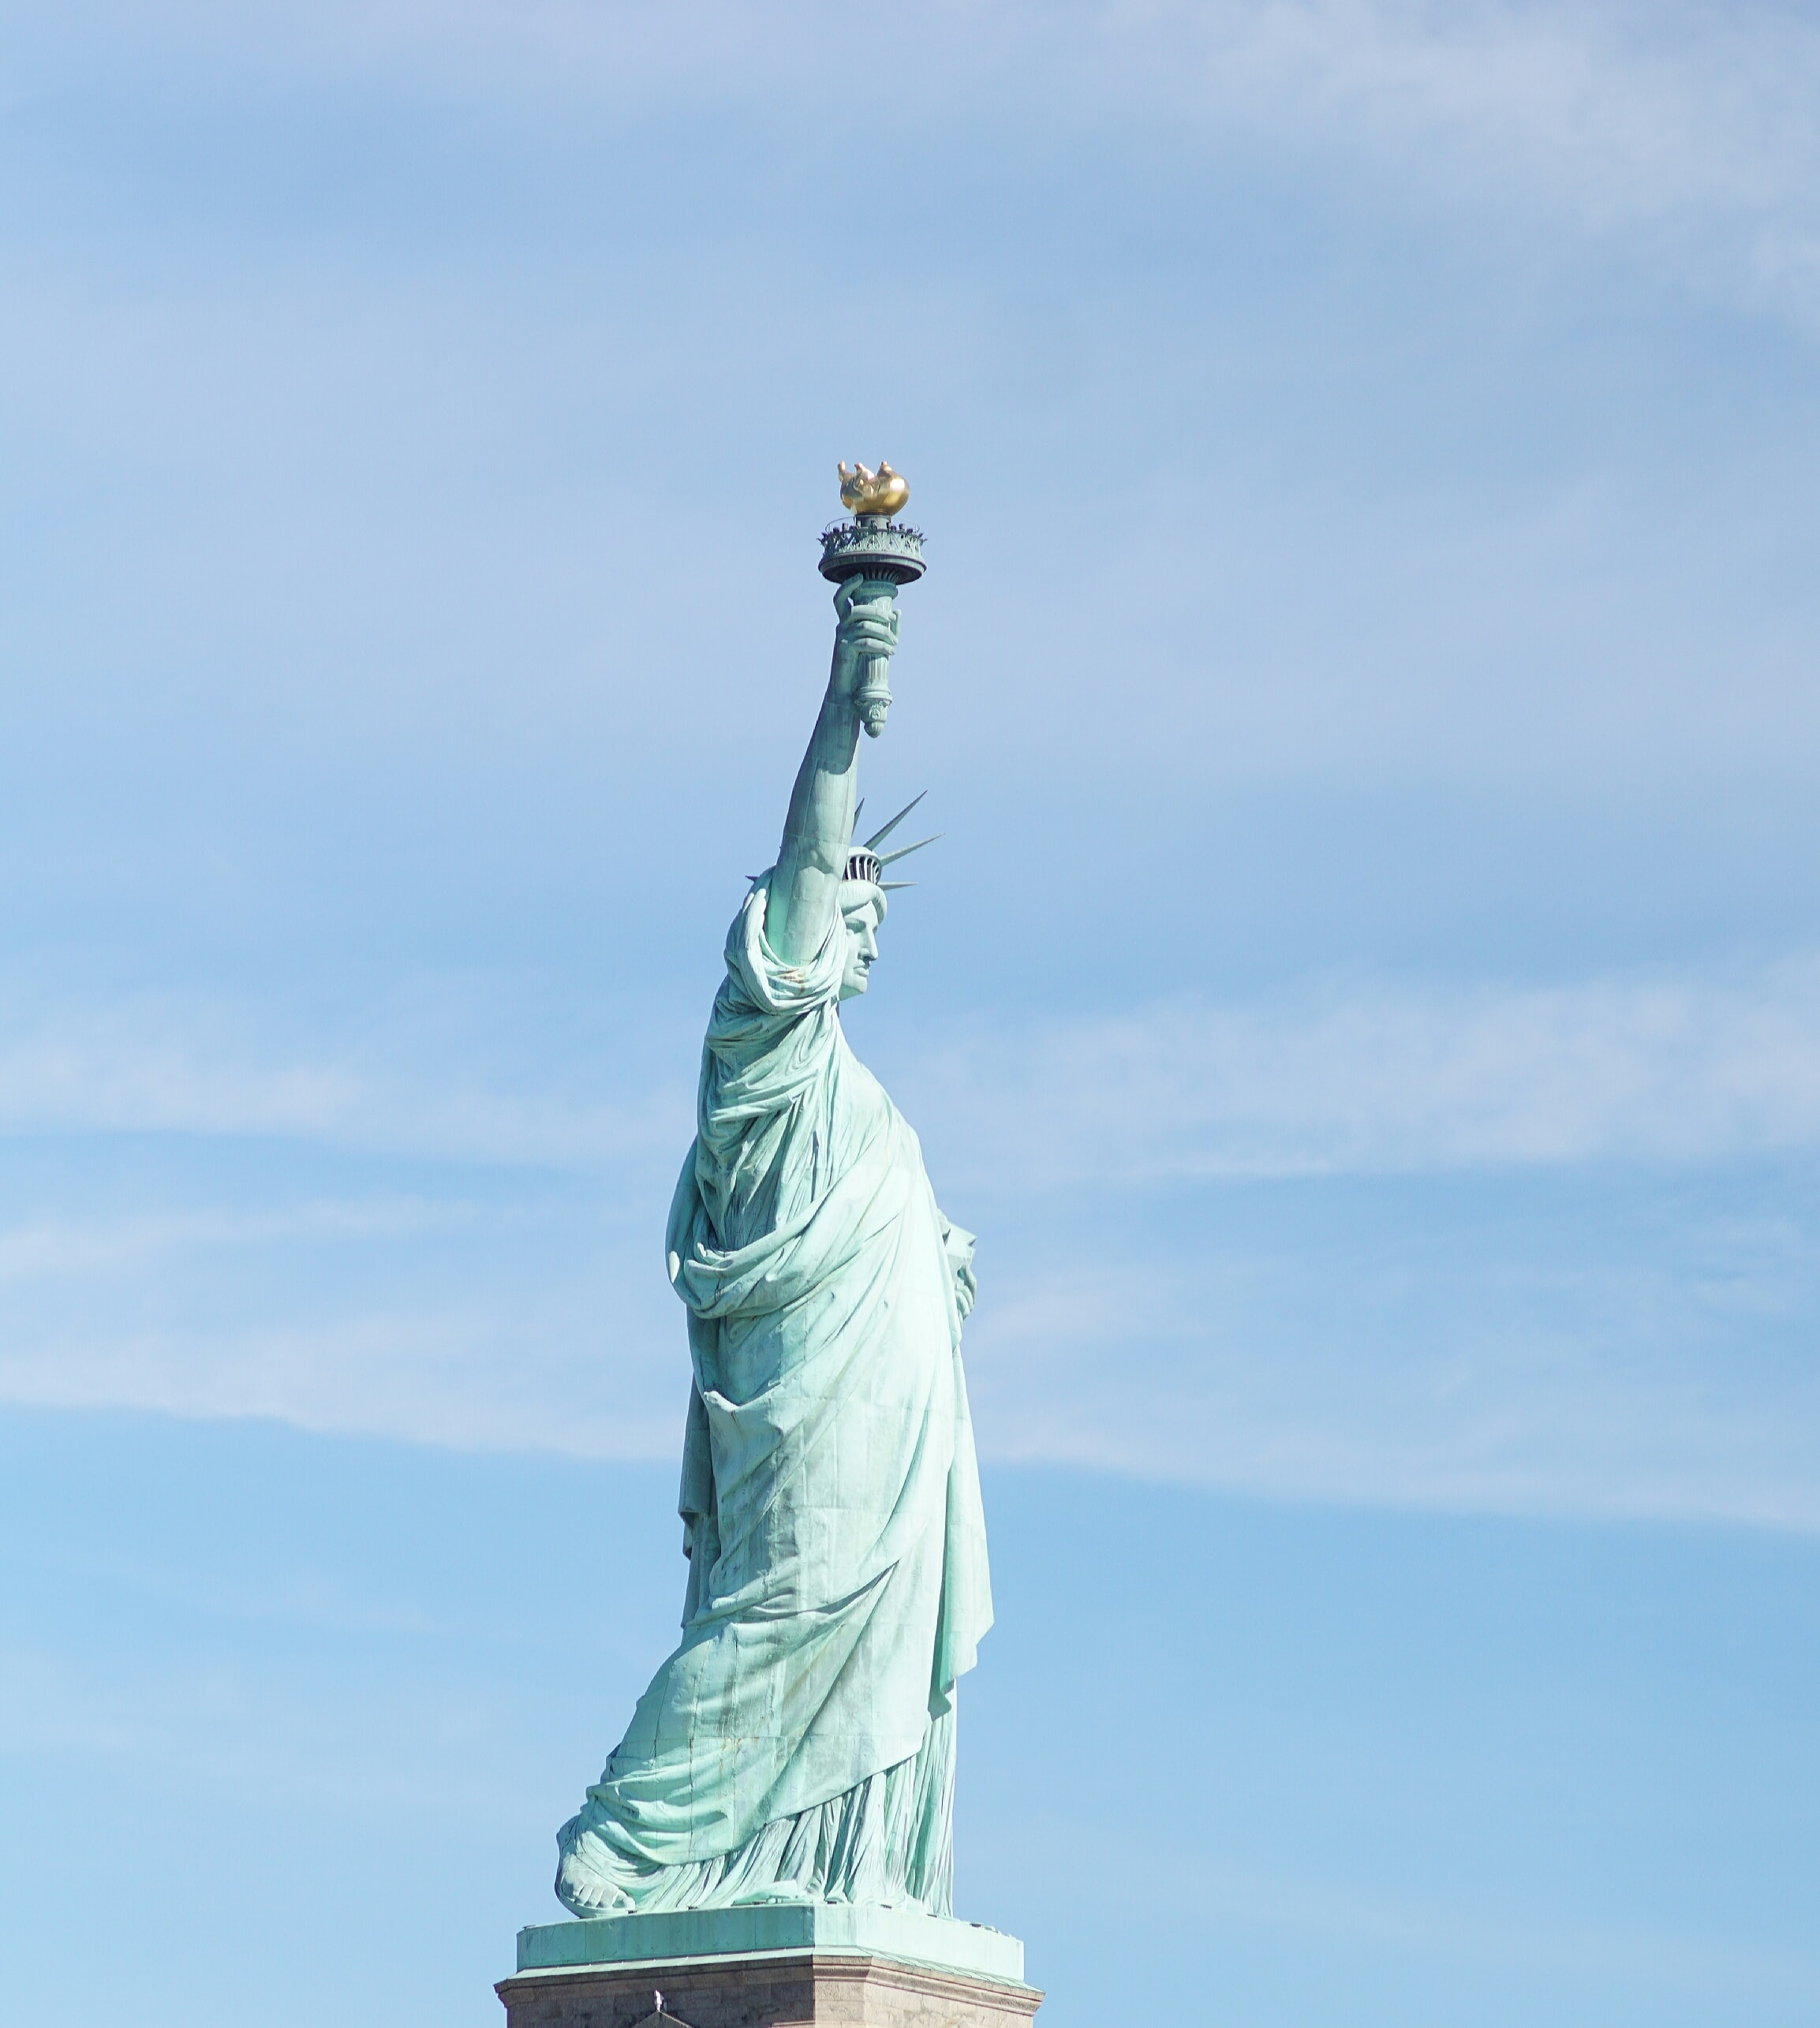 The Statue of Liberty stands tall against a bright blue sky in New York City